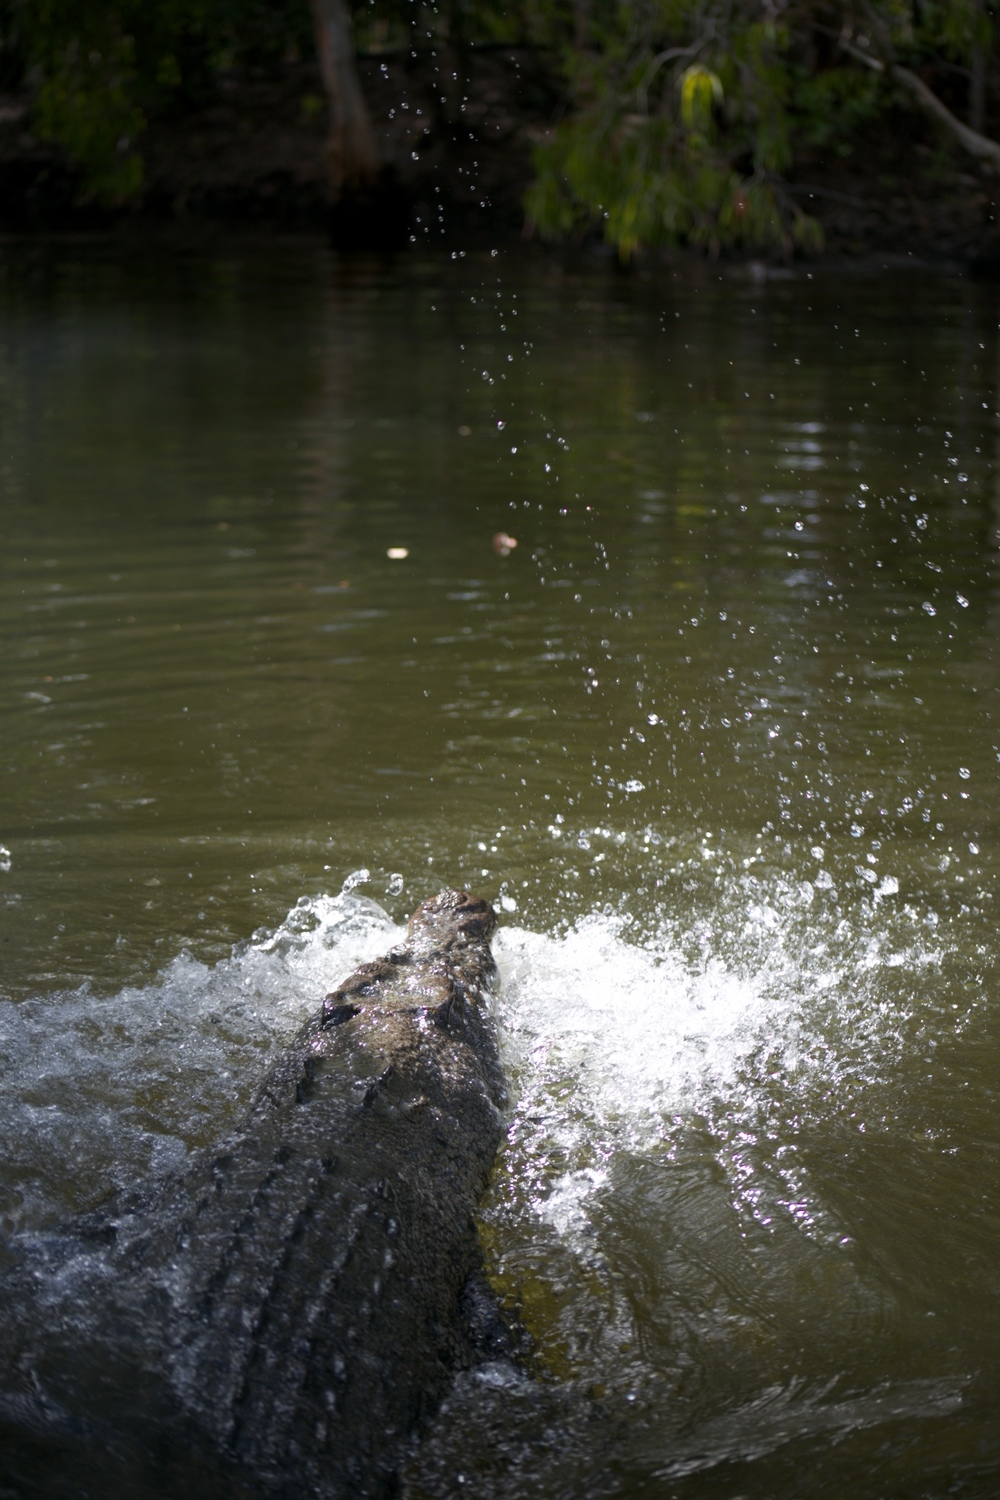 A crocodile lunging to catch food from the water.